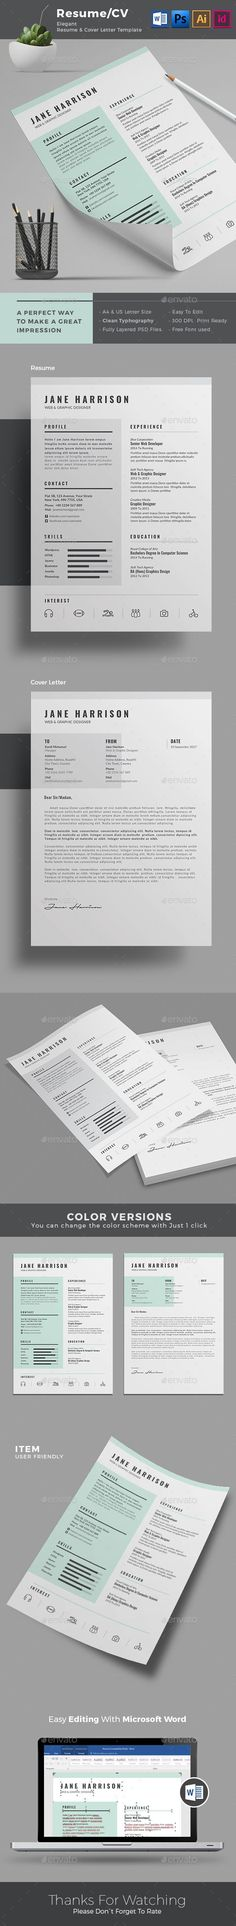 Minimal Resume Template Design | A4 & US Letter Size | Indesign + IDML + PSD + AI + MS Word | Multiple Color Versions to suite your taste | Download Now - https://graphicriver.net/item/resume/17964957?ref=themedevisers